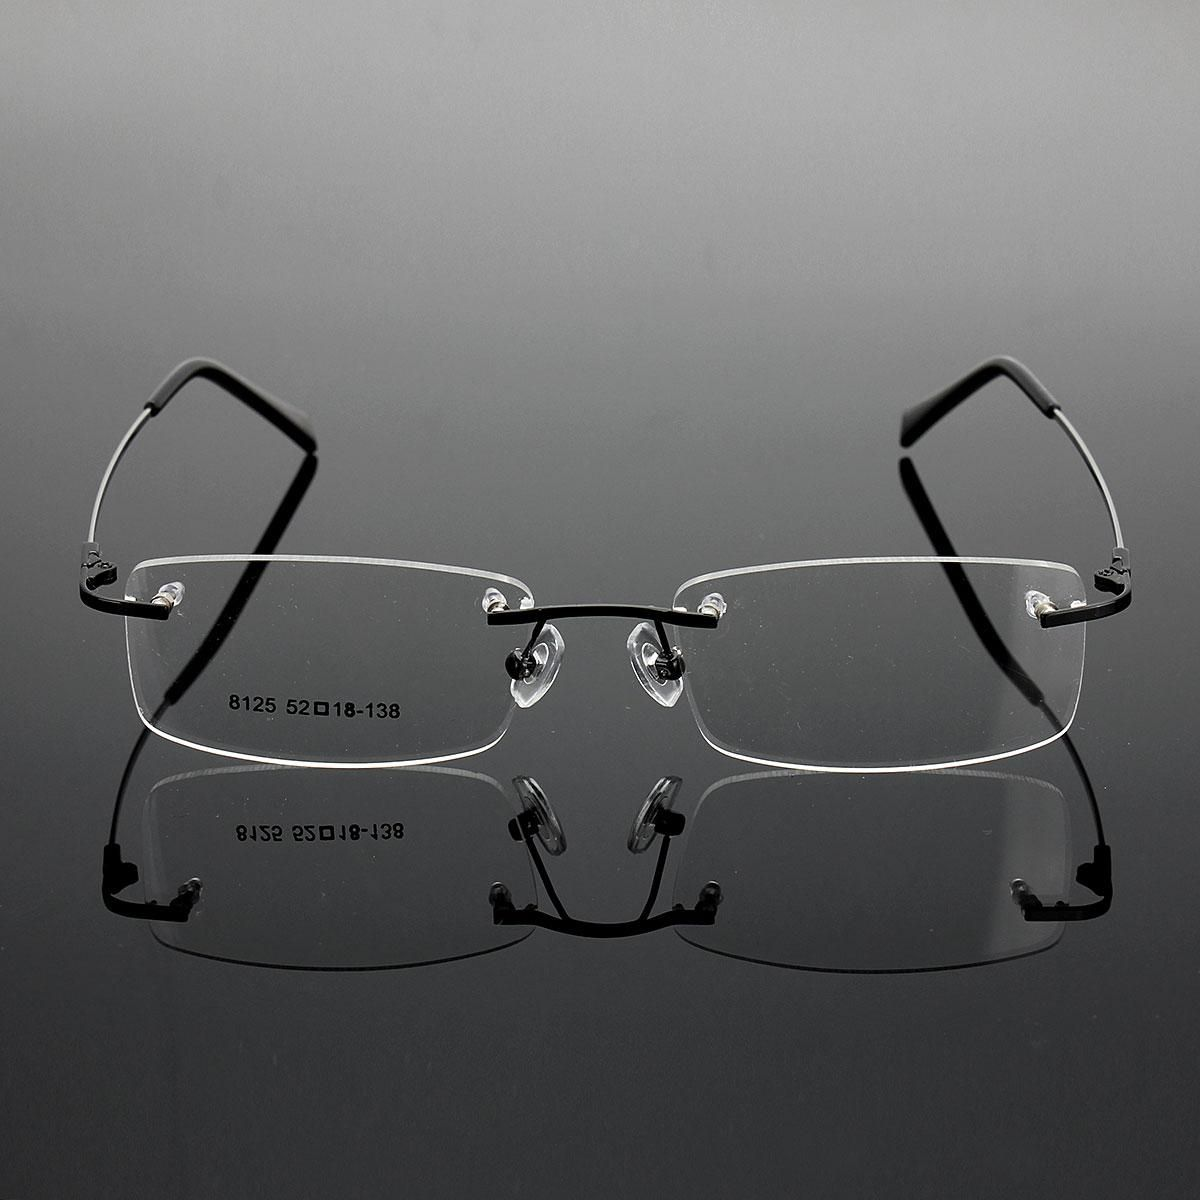 36a41c5c31b Buy Generic Rimless Glasses Lightest Rx Optical Eyeglasses Memory Titanium  Spectacles Frame Black in Egypt